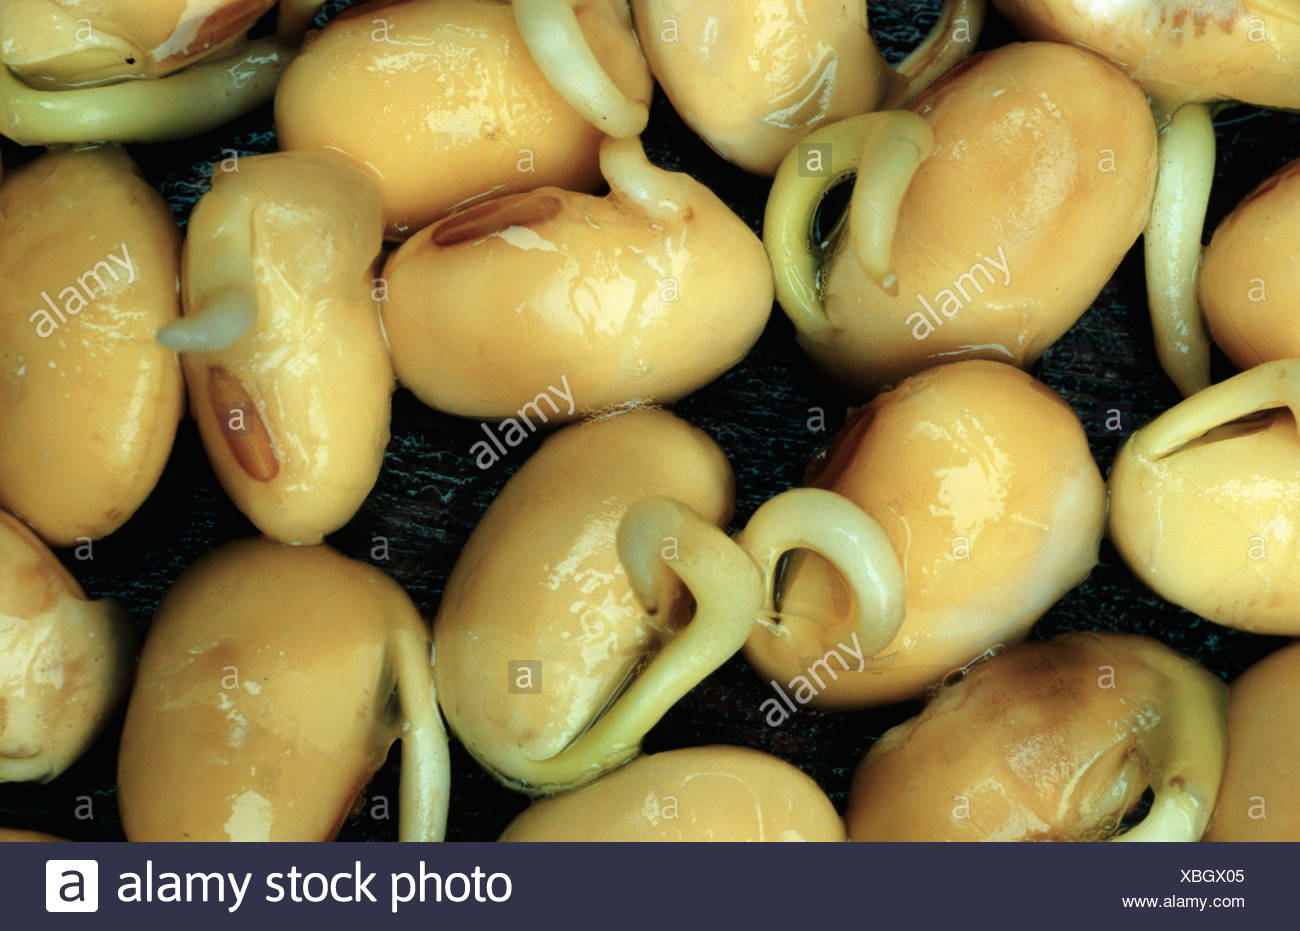 Bean Seeds Germination Stock Photos Amp Bean Seeds Germination Stock Images